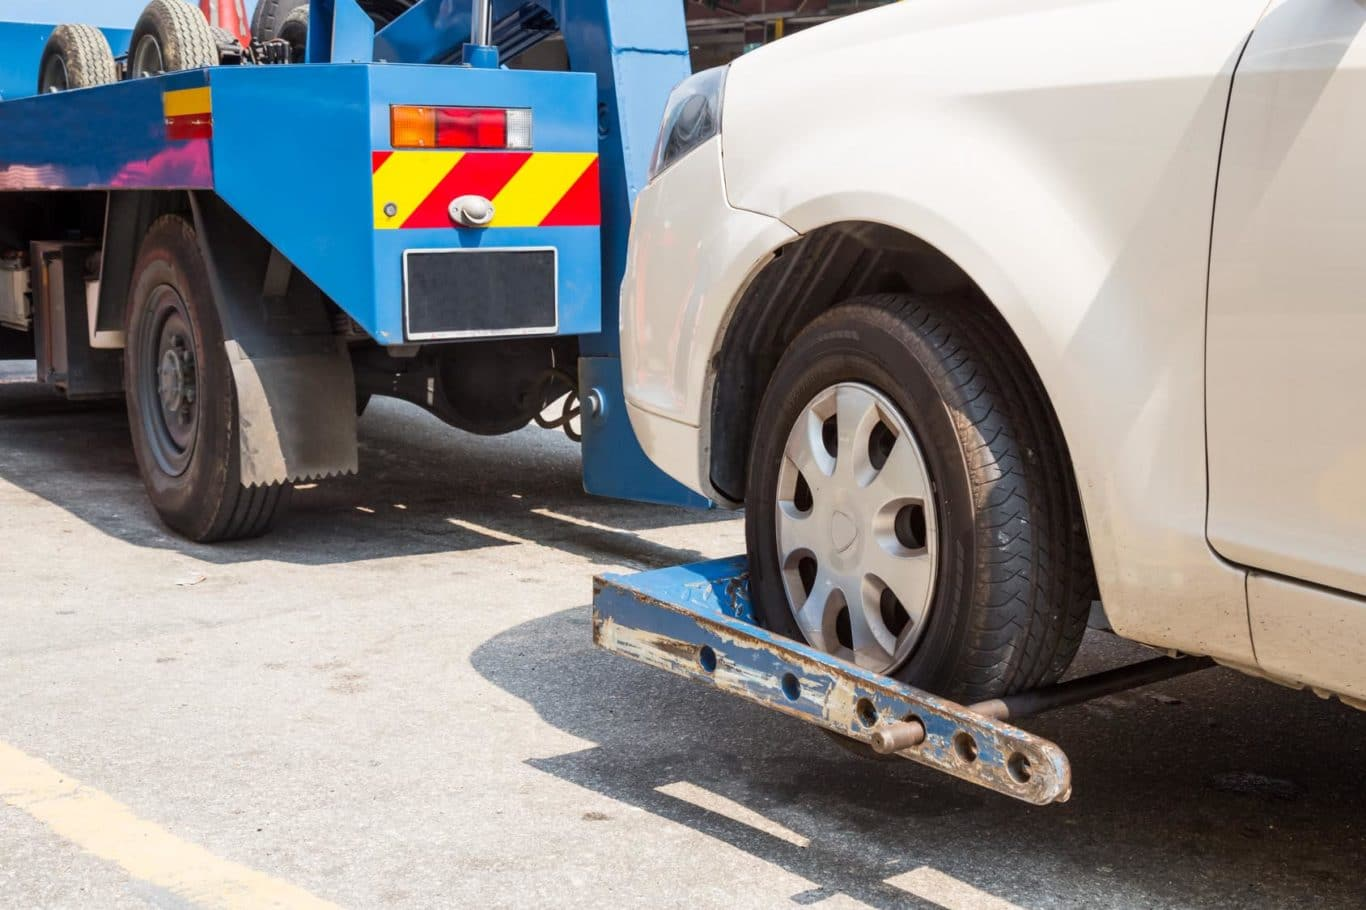 Kilnamanagh expert Car Towing services